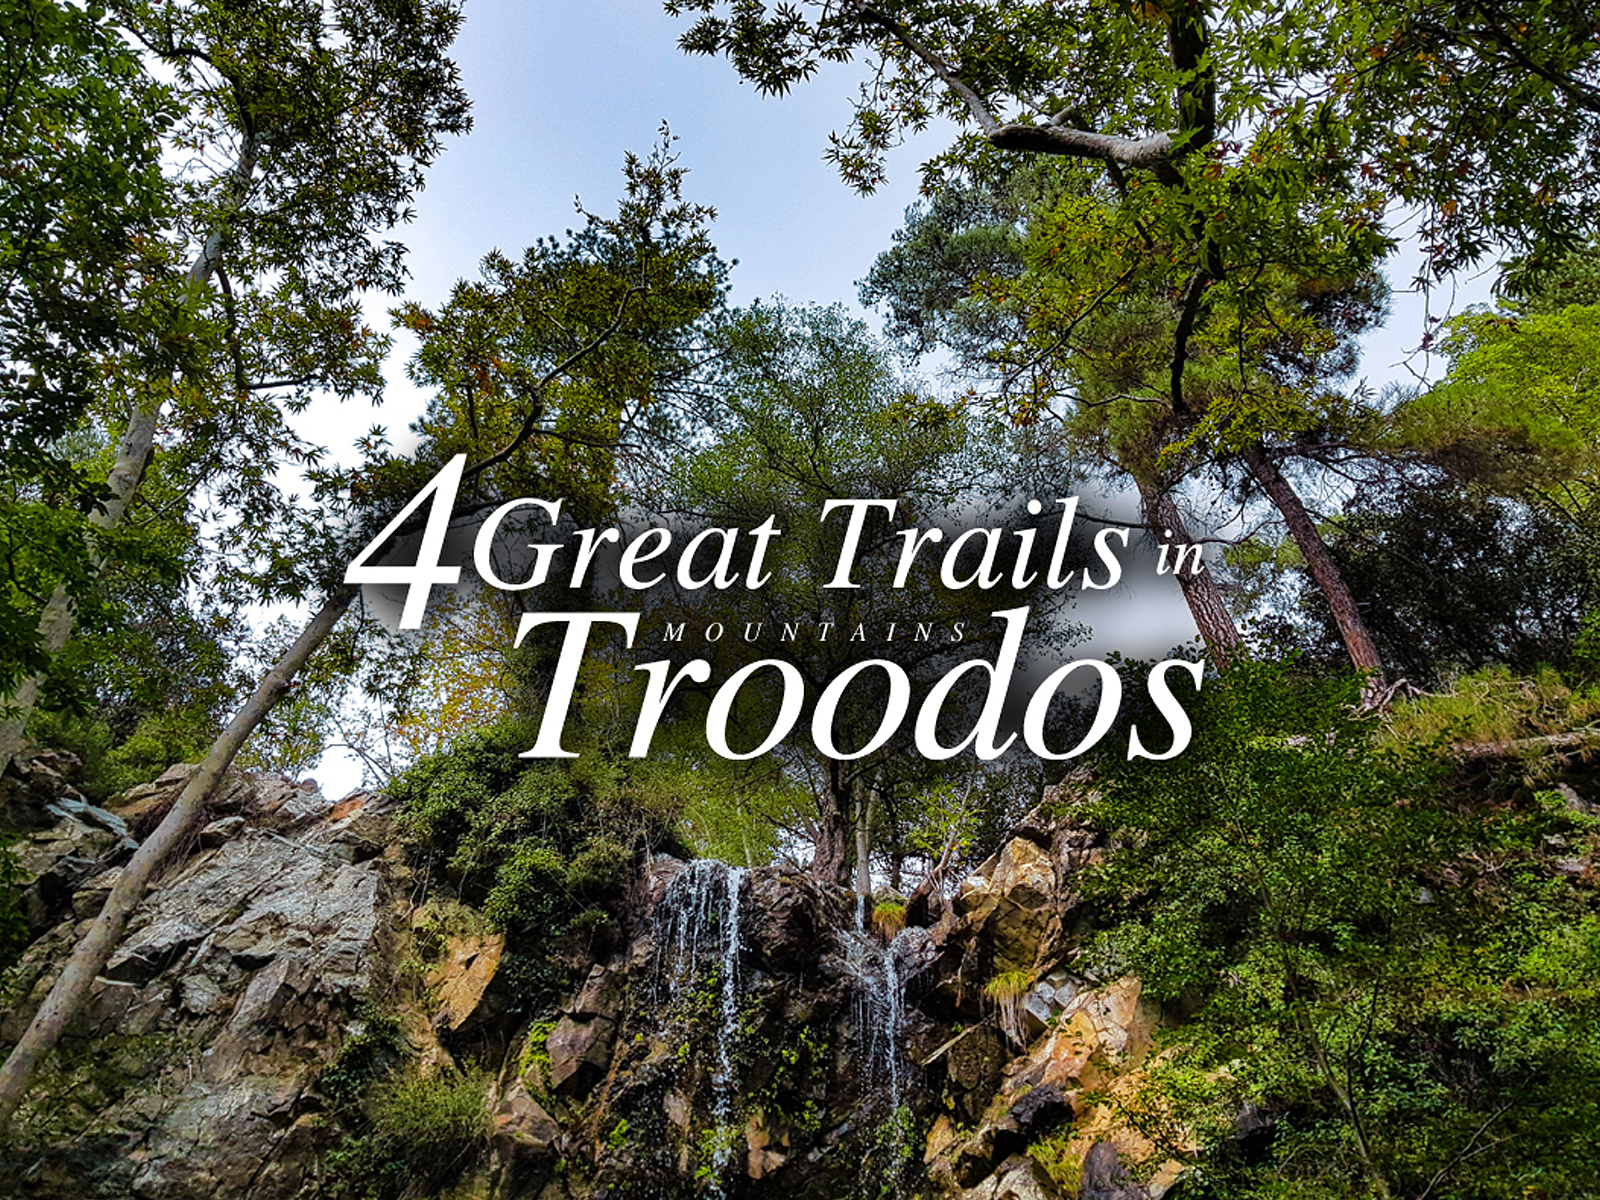 4 GREAT TRAILS IN TROODOS MOUNTAINS